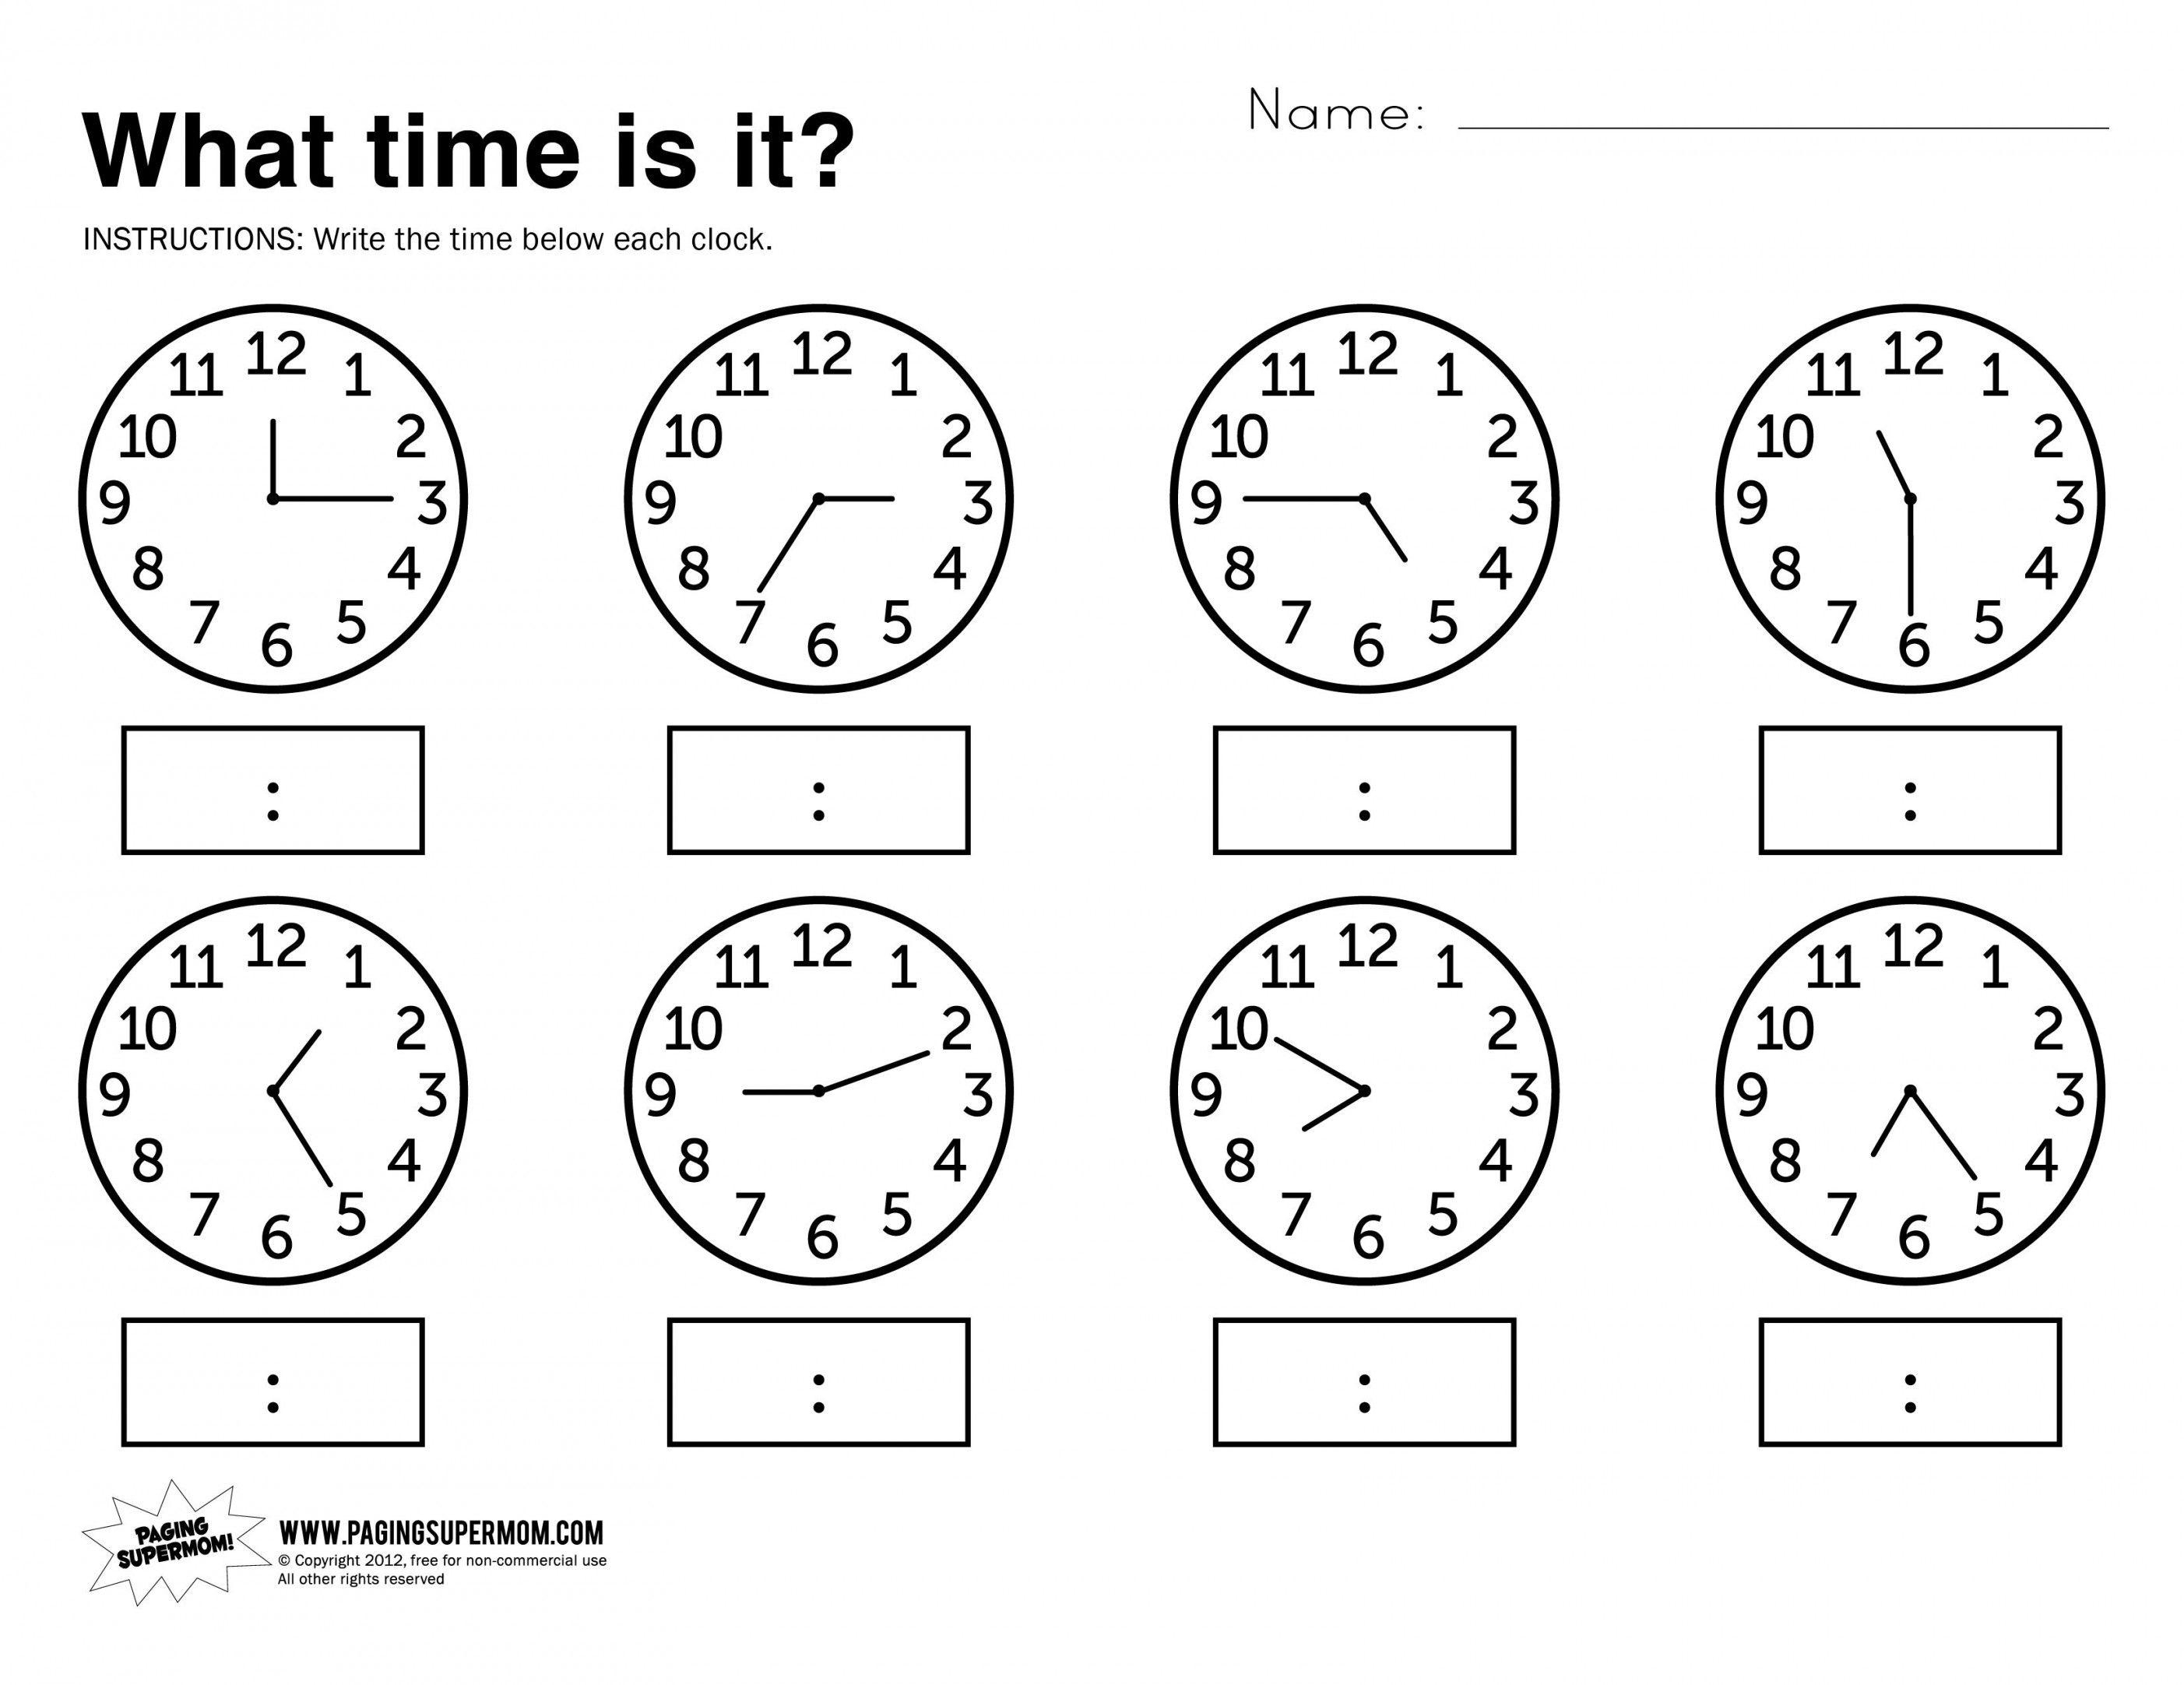 Telling Time Worksheets Grade 3 | Lostranquillos - Free Printable | Telling Time Worksheet Printable